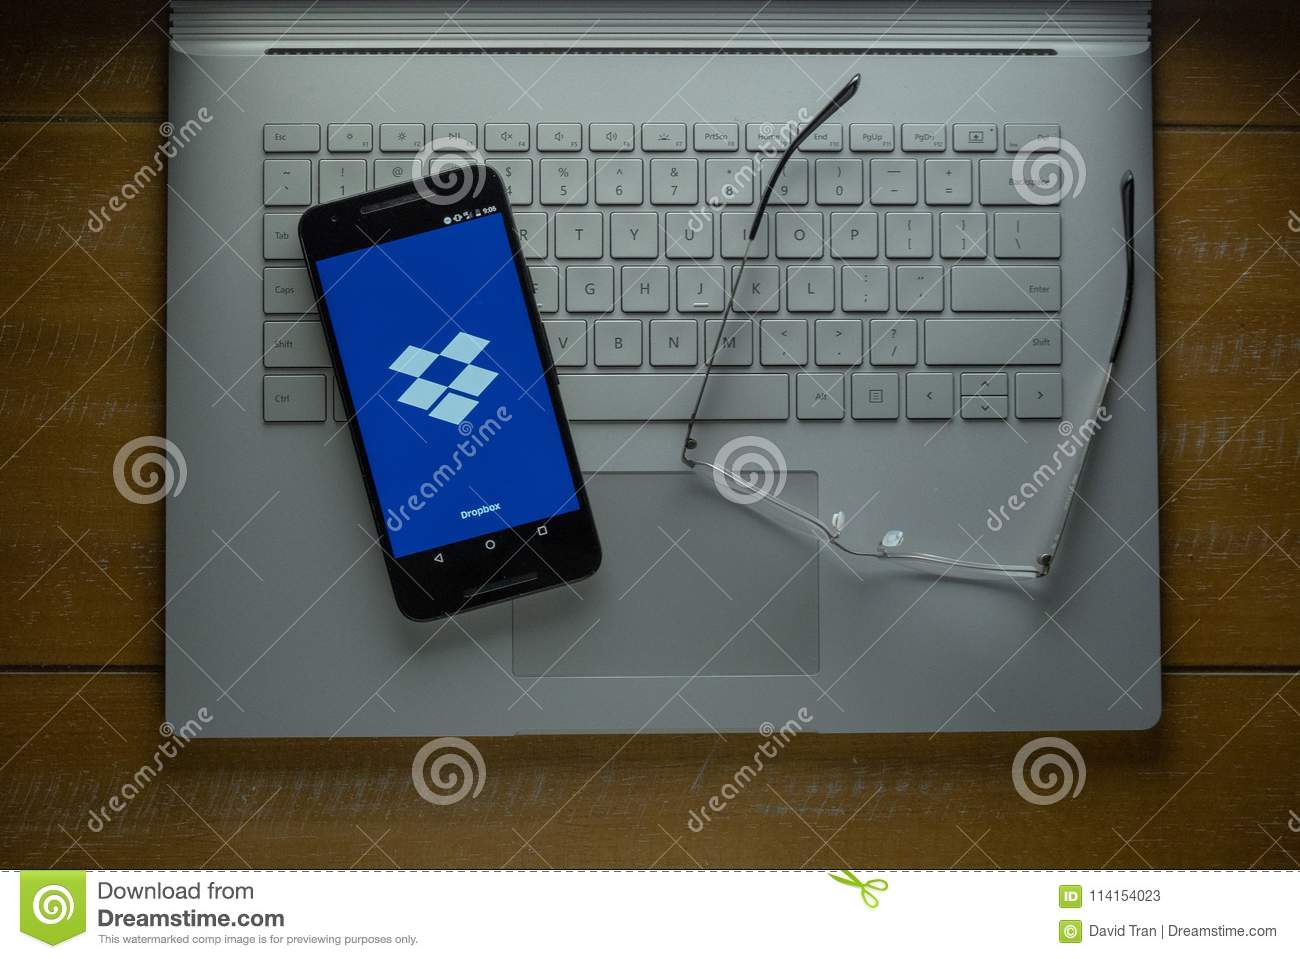 Dropbox app loading on Android phone in a dark room